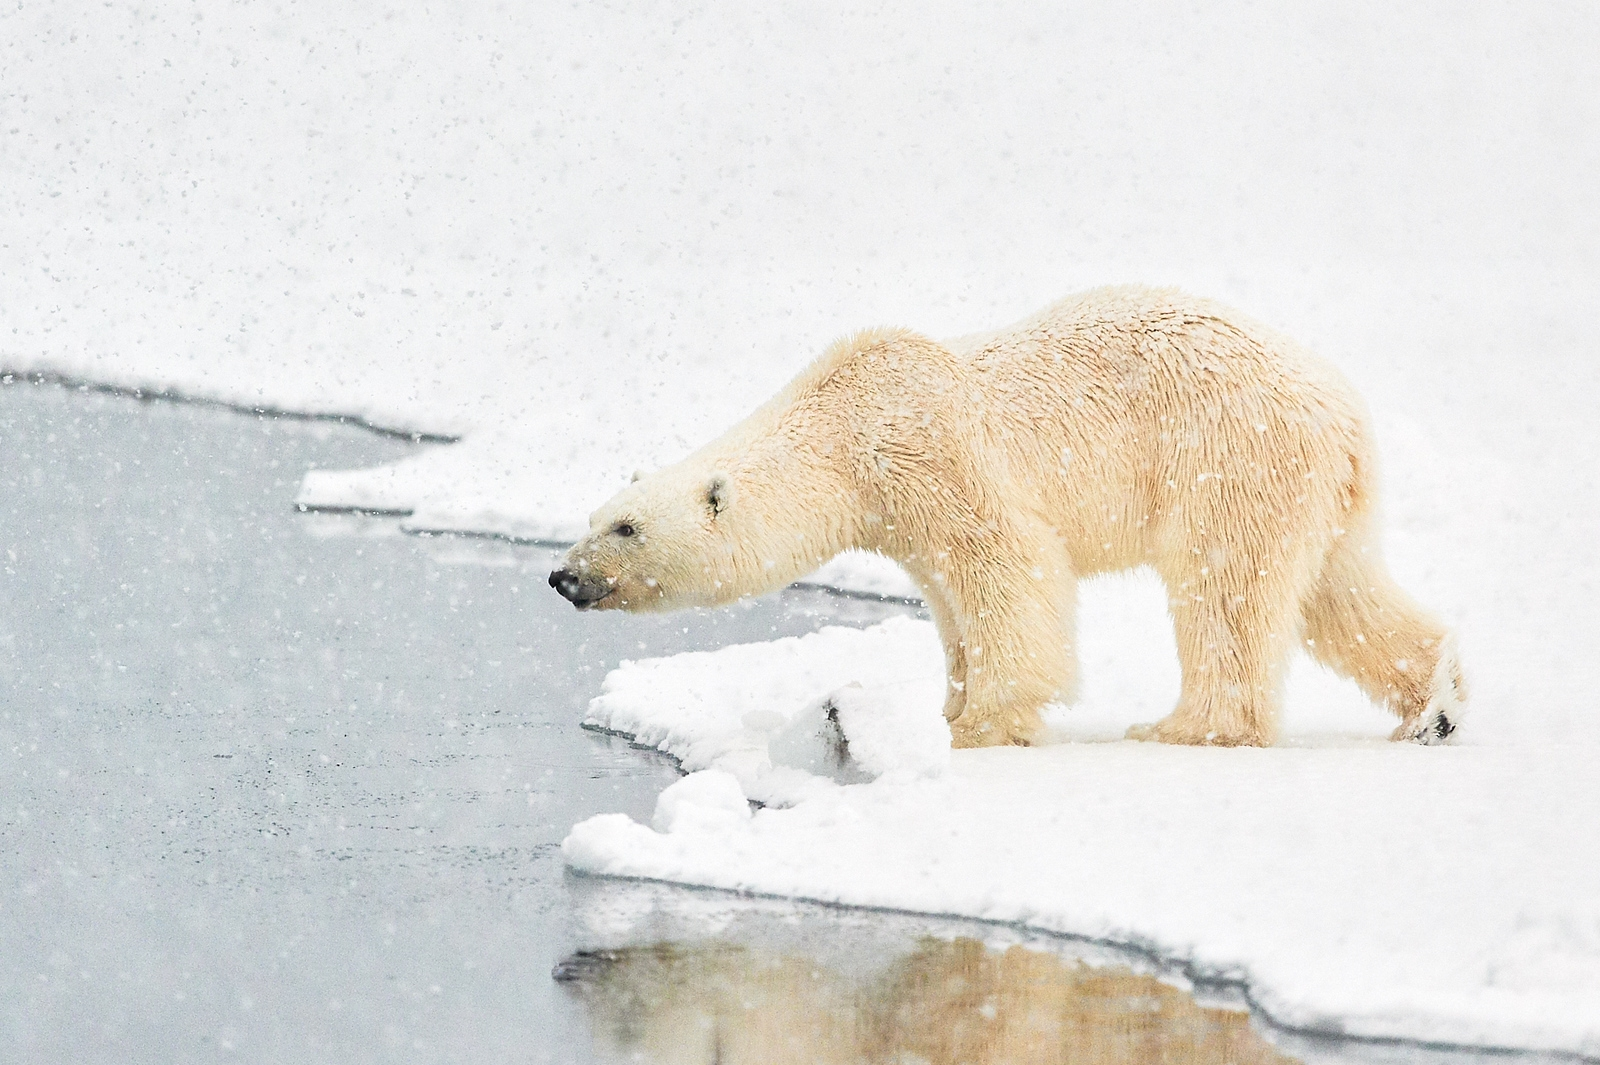 Polar Bears of Svalbard in Winter (6 images)